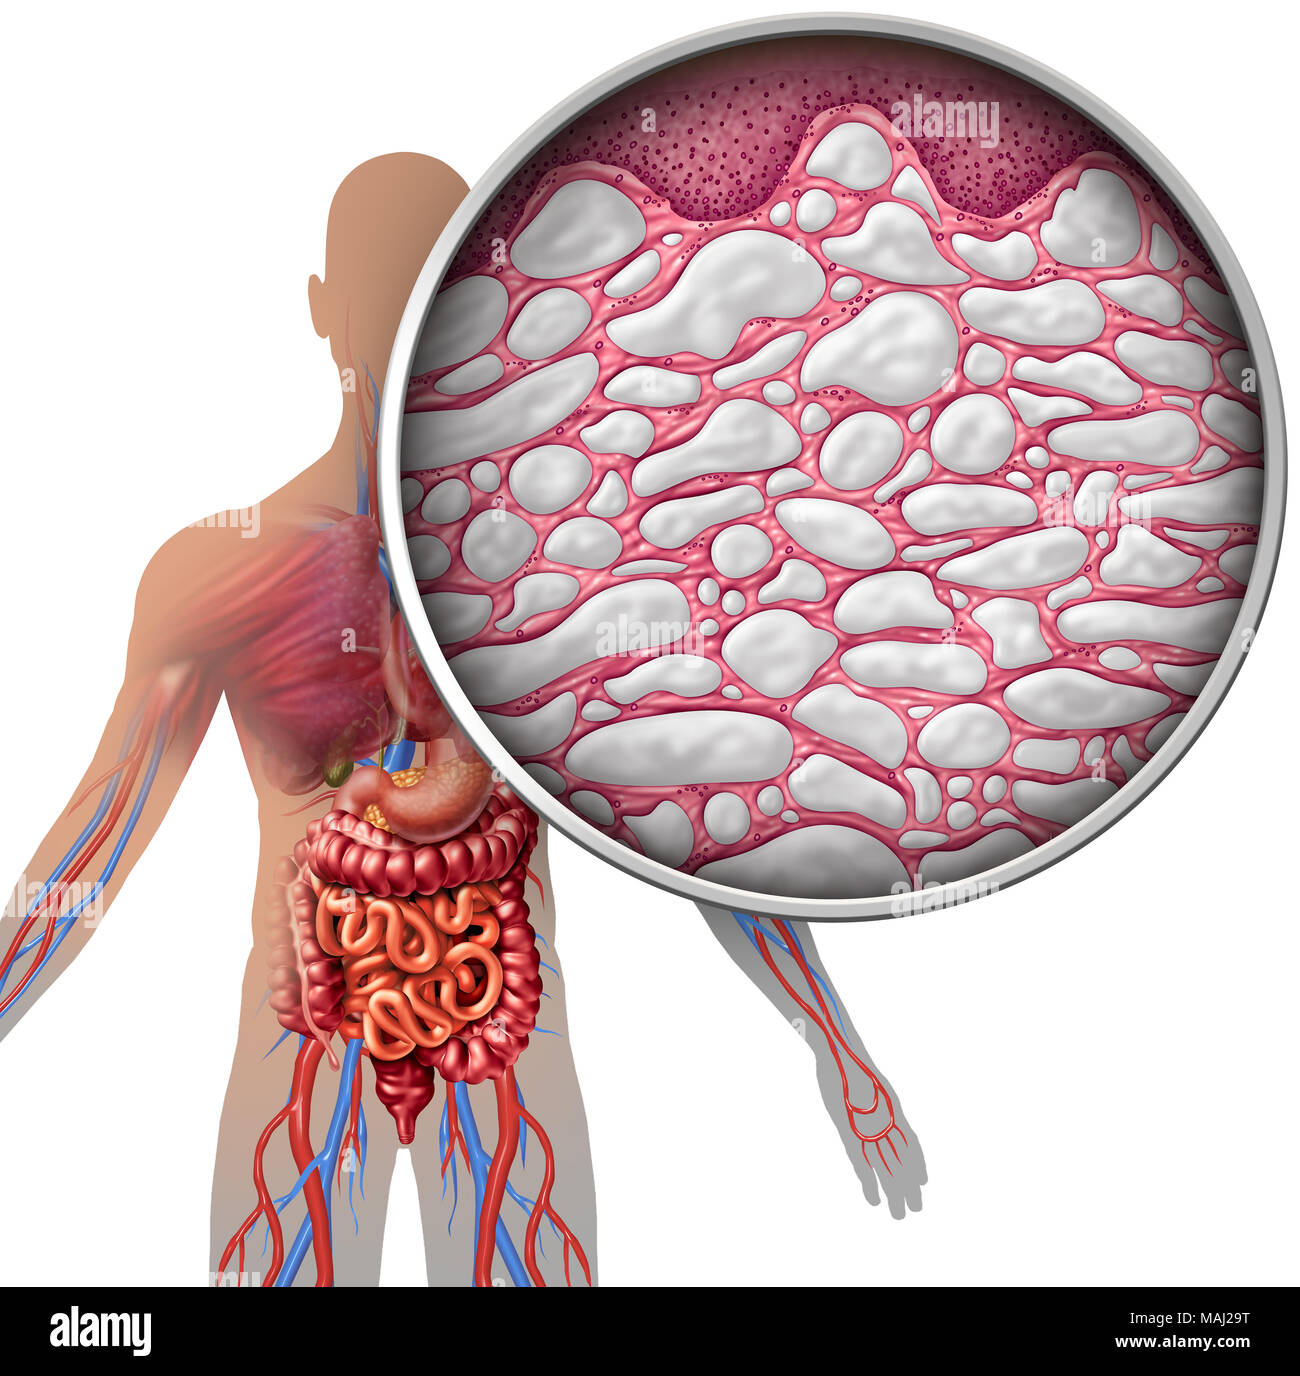 Interstitium Human Body Anatomy With Organs Concept As Connective